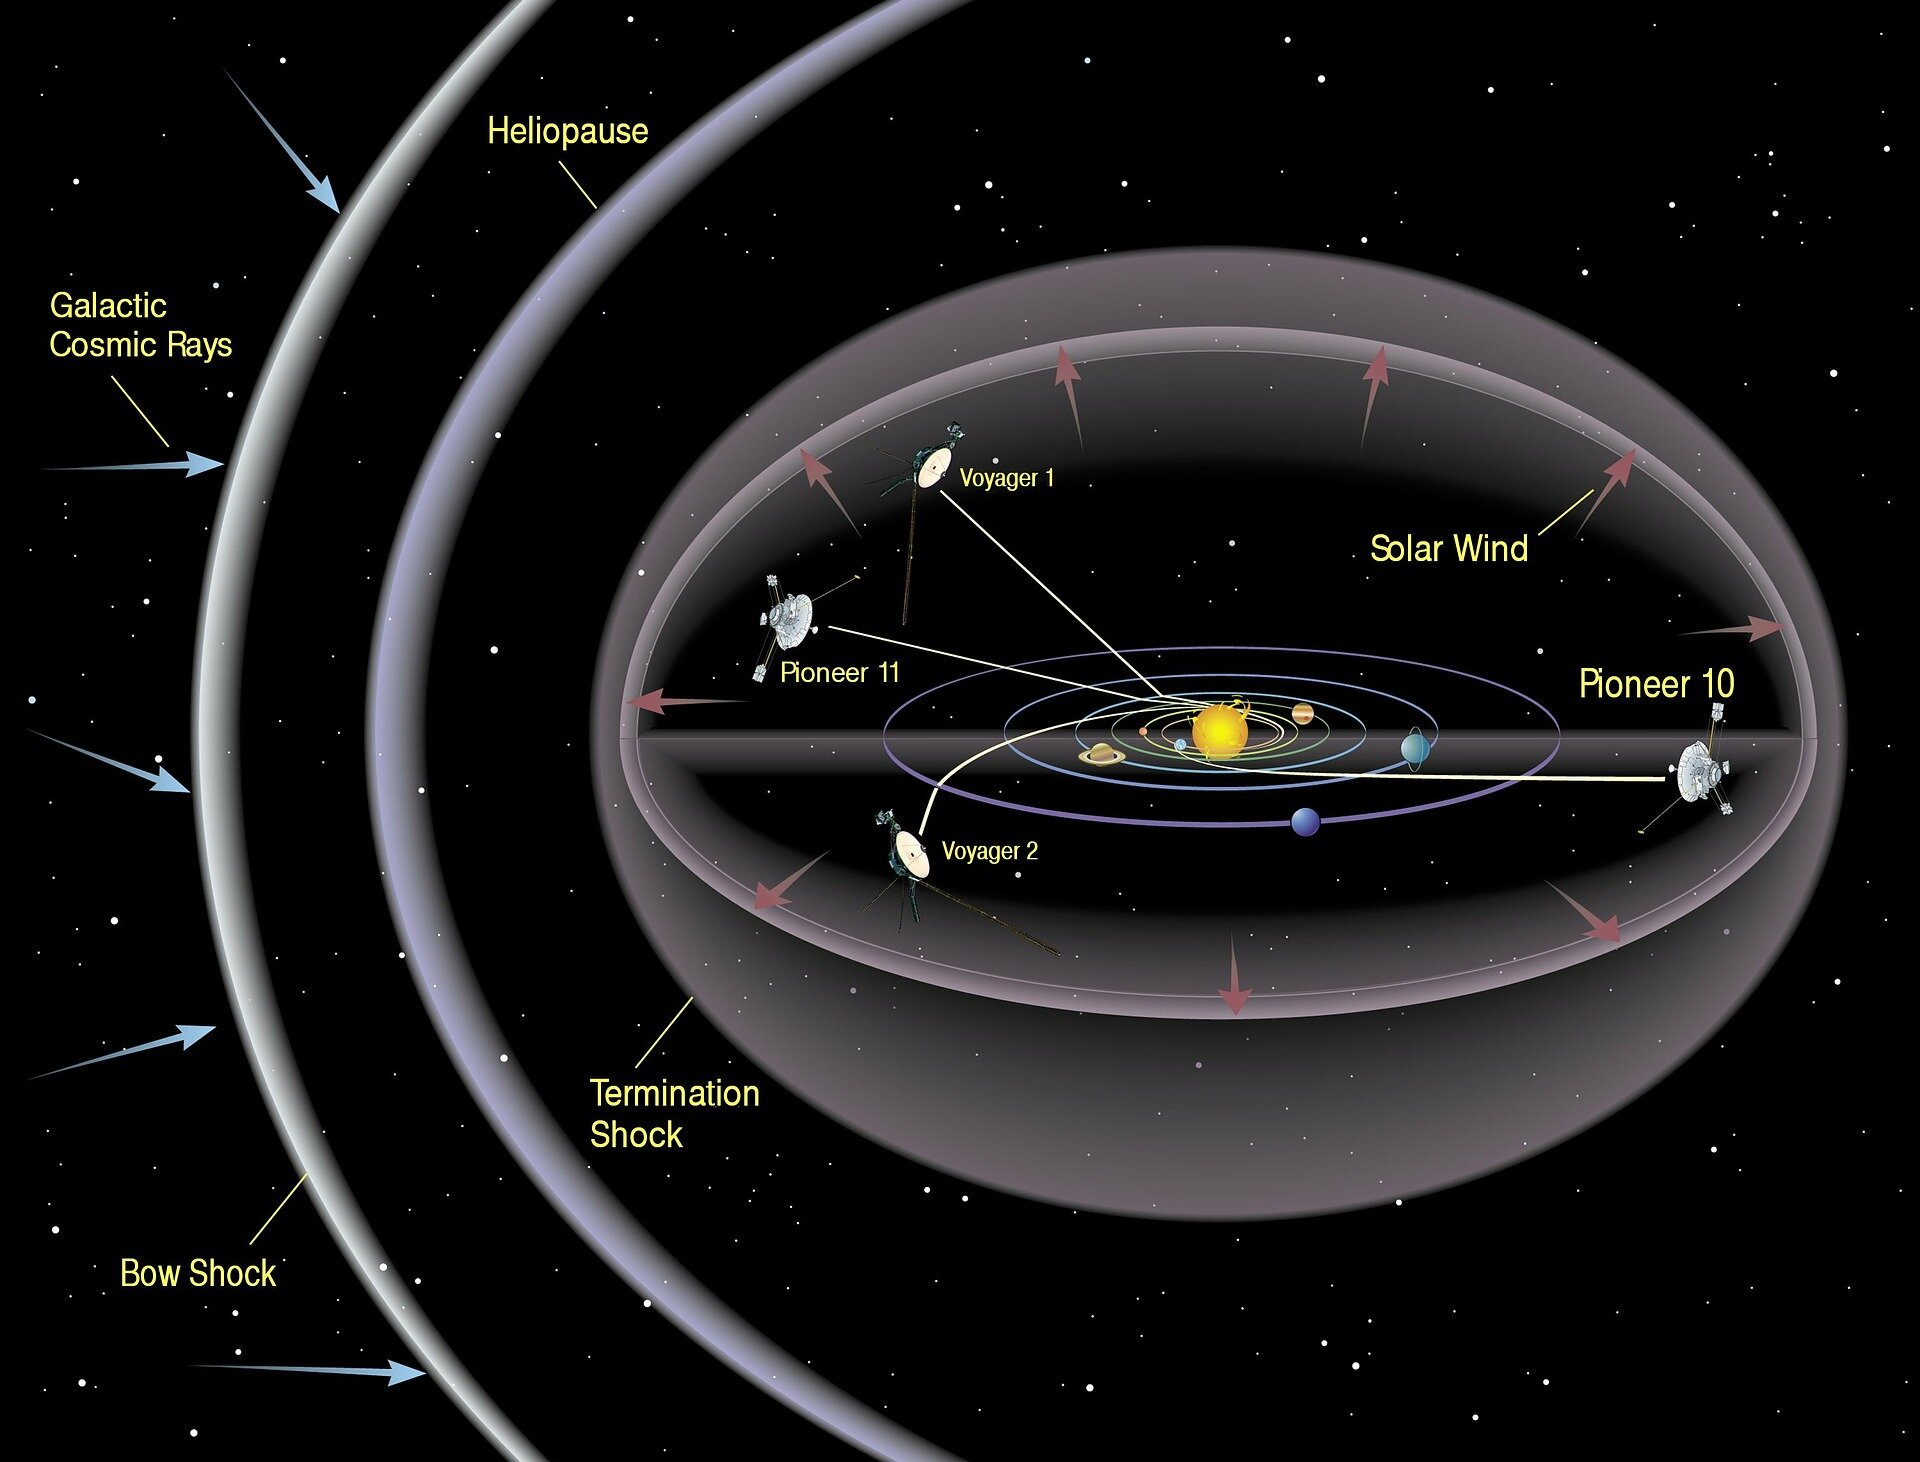 In the emptiness of space, Voyager 1 detects plasma 'hum'